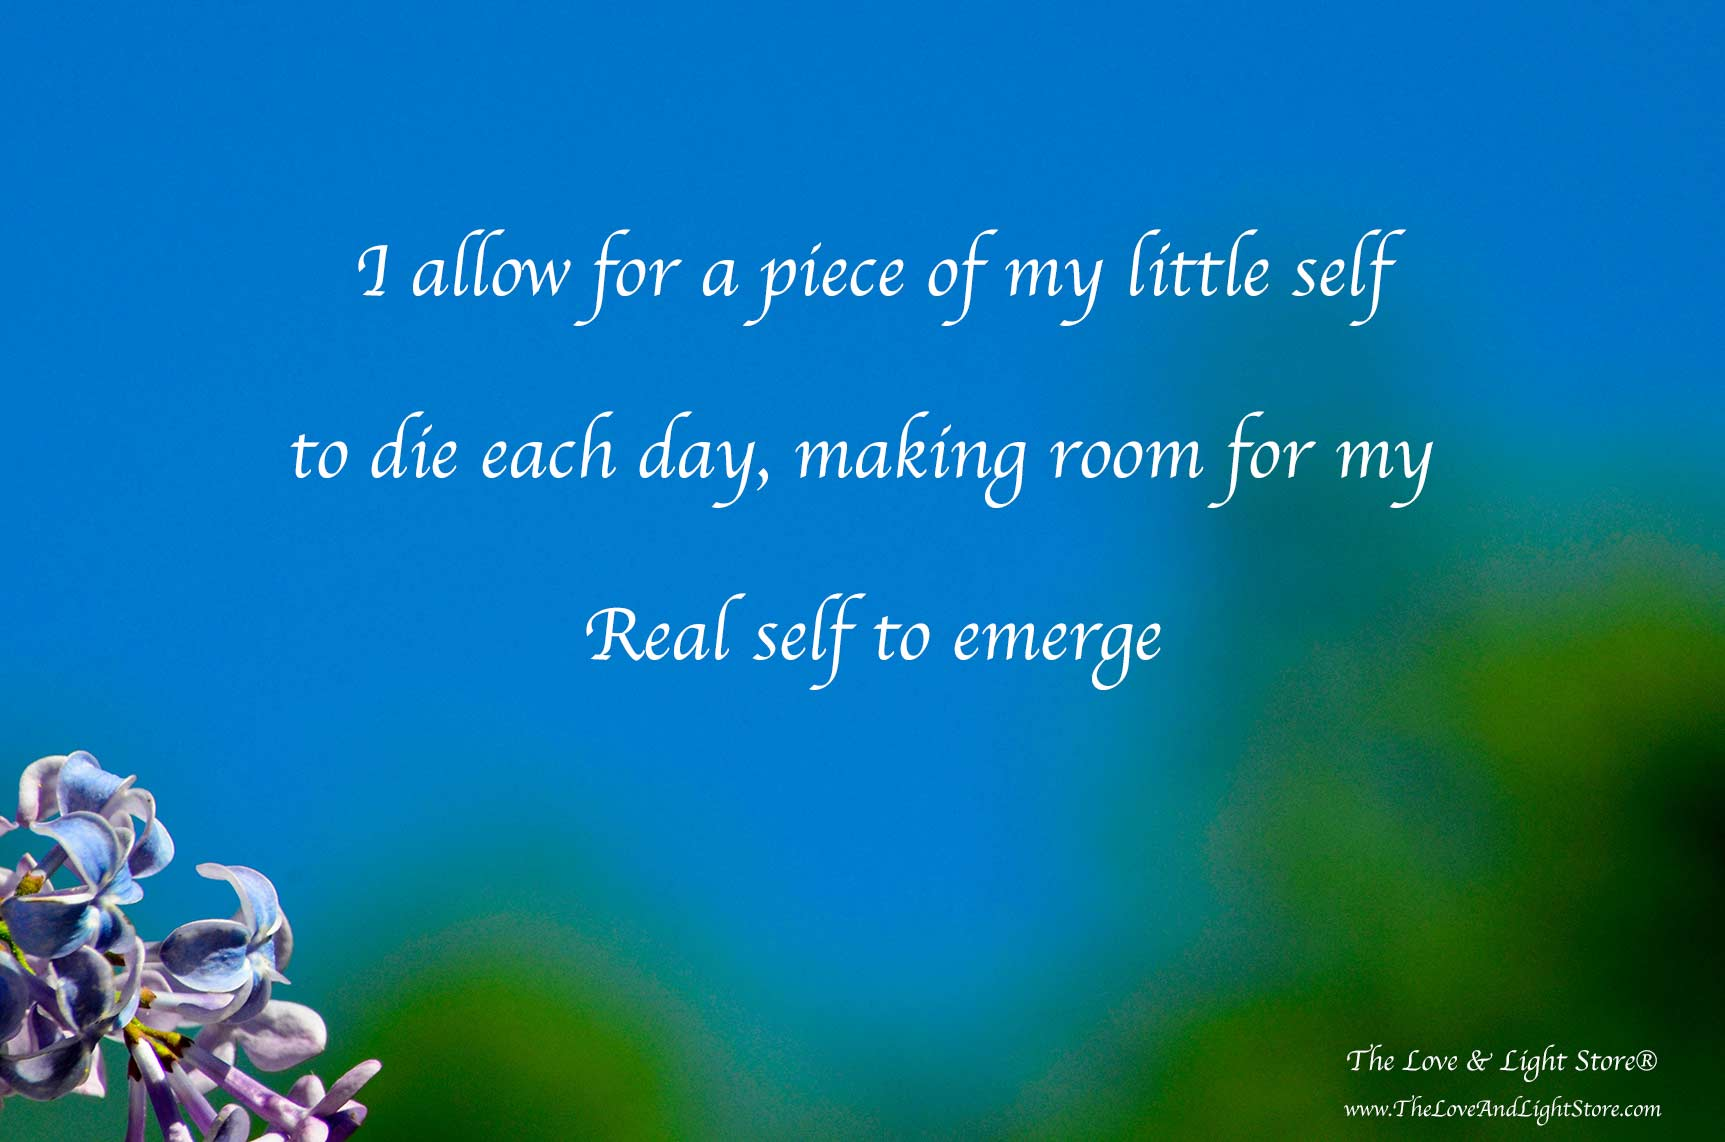 I allow for my little self to die and for my Real Self to emerge